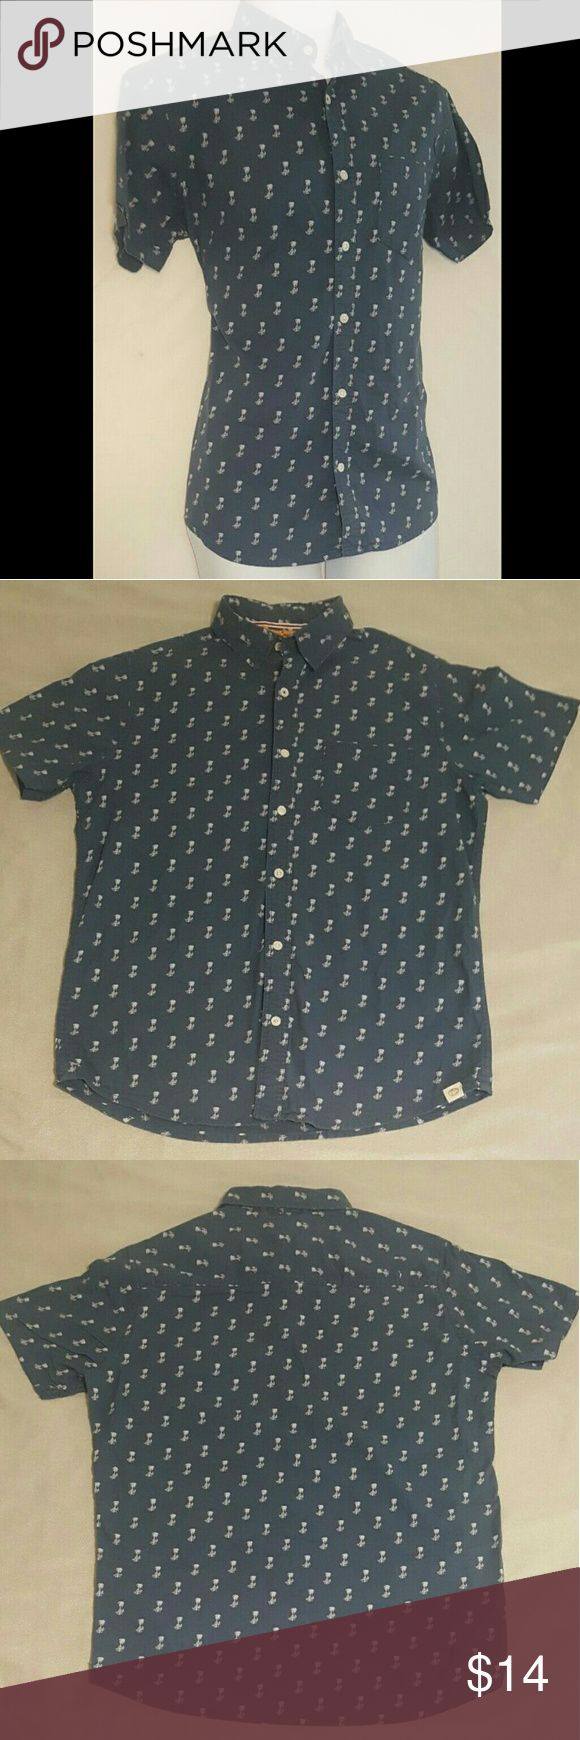 Free Planet Medium Tropical Palm Tree Print Shirt Free Planet   Tropical  Palm Tree Print  Button-down  Casual  Dress Shirt   Pre-owned - Used  Please See Photos  Marking on Tag   Blue  Men's Size Medium  100% Cotton  Made in India   Fast Shipping and Handling   Love The Item but,   Not The Price?   Make An Offer!     Like The Item but,   Not Quite Right?   Browse Our Store! Free Planet Shirts Casual Button Down Shirts